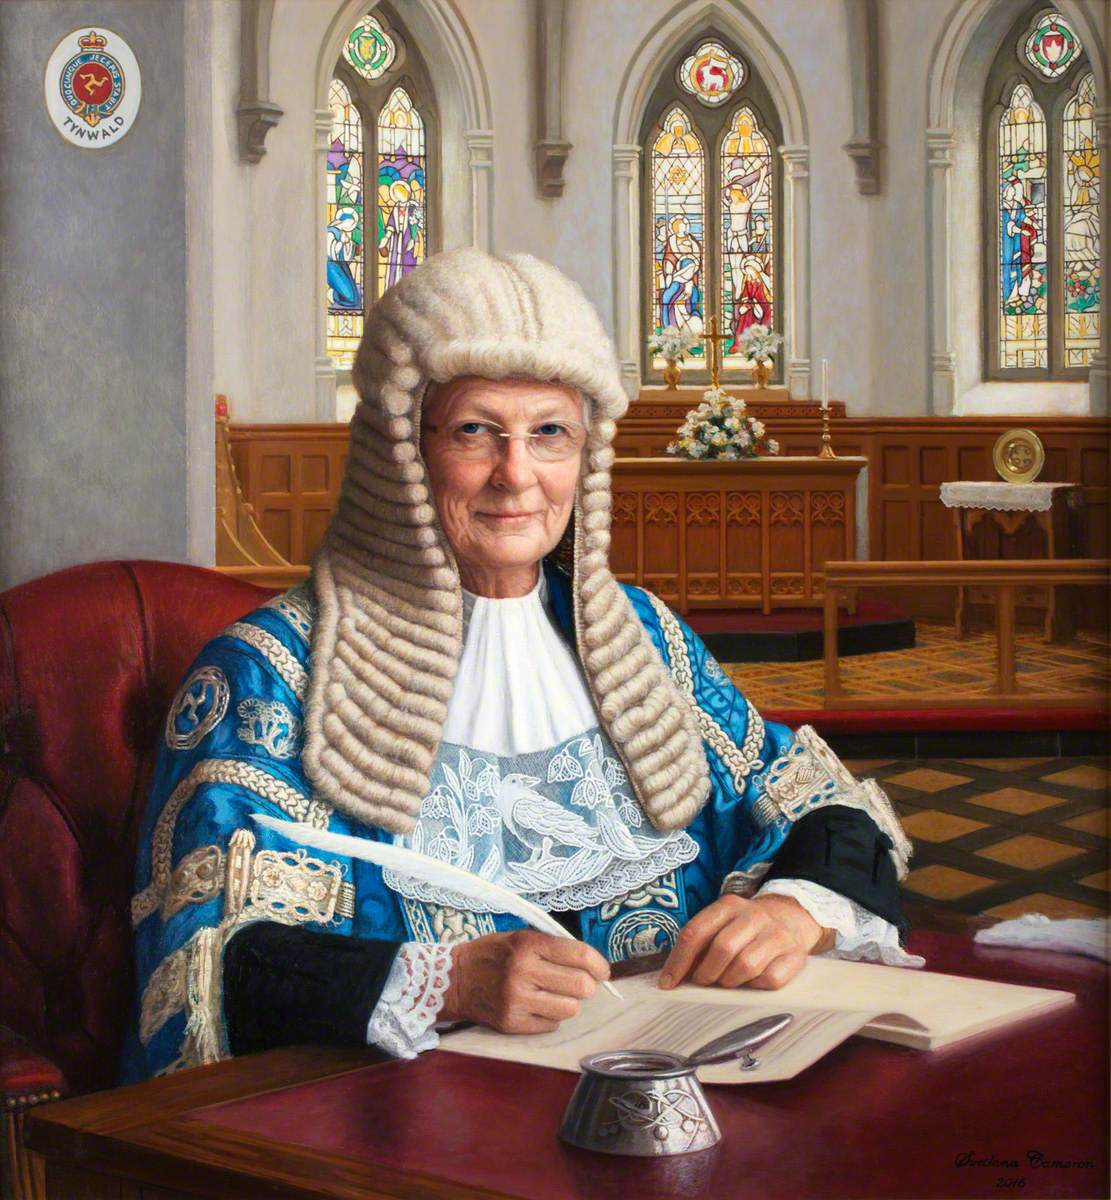 Clare Christian, OBE, President of Tynwald (2011–2016)